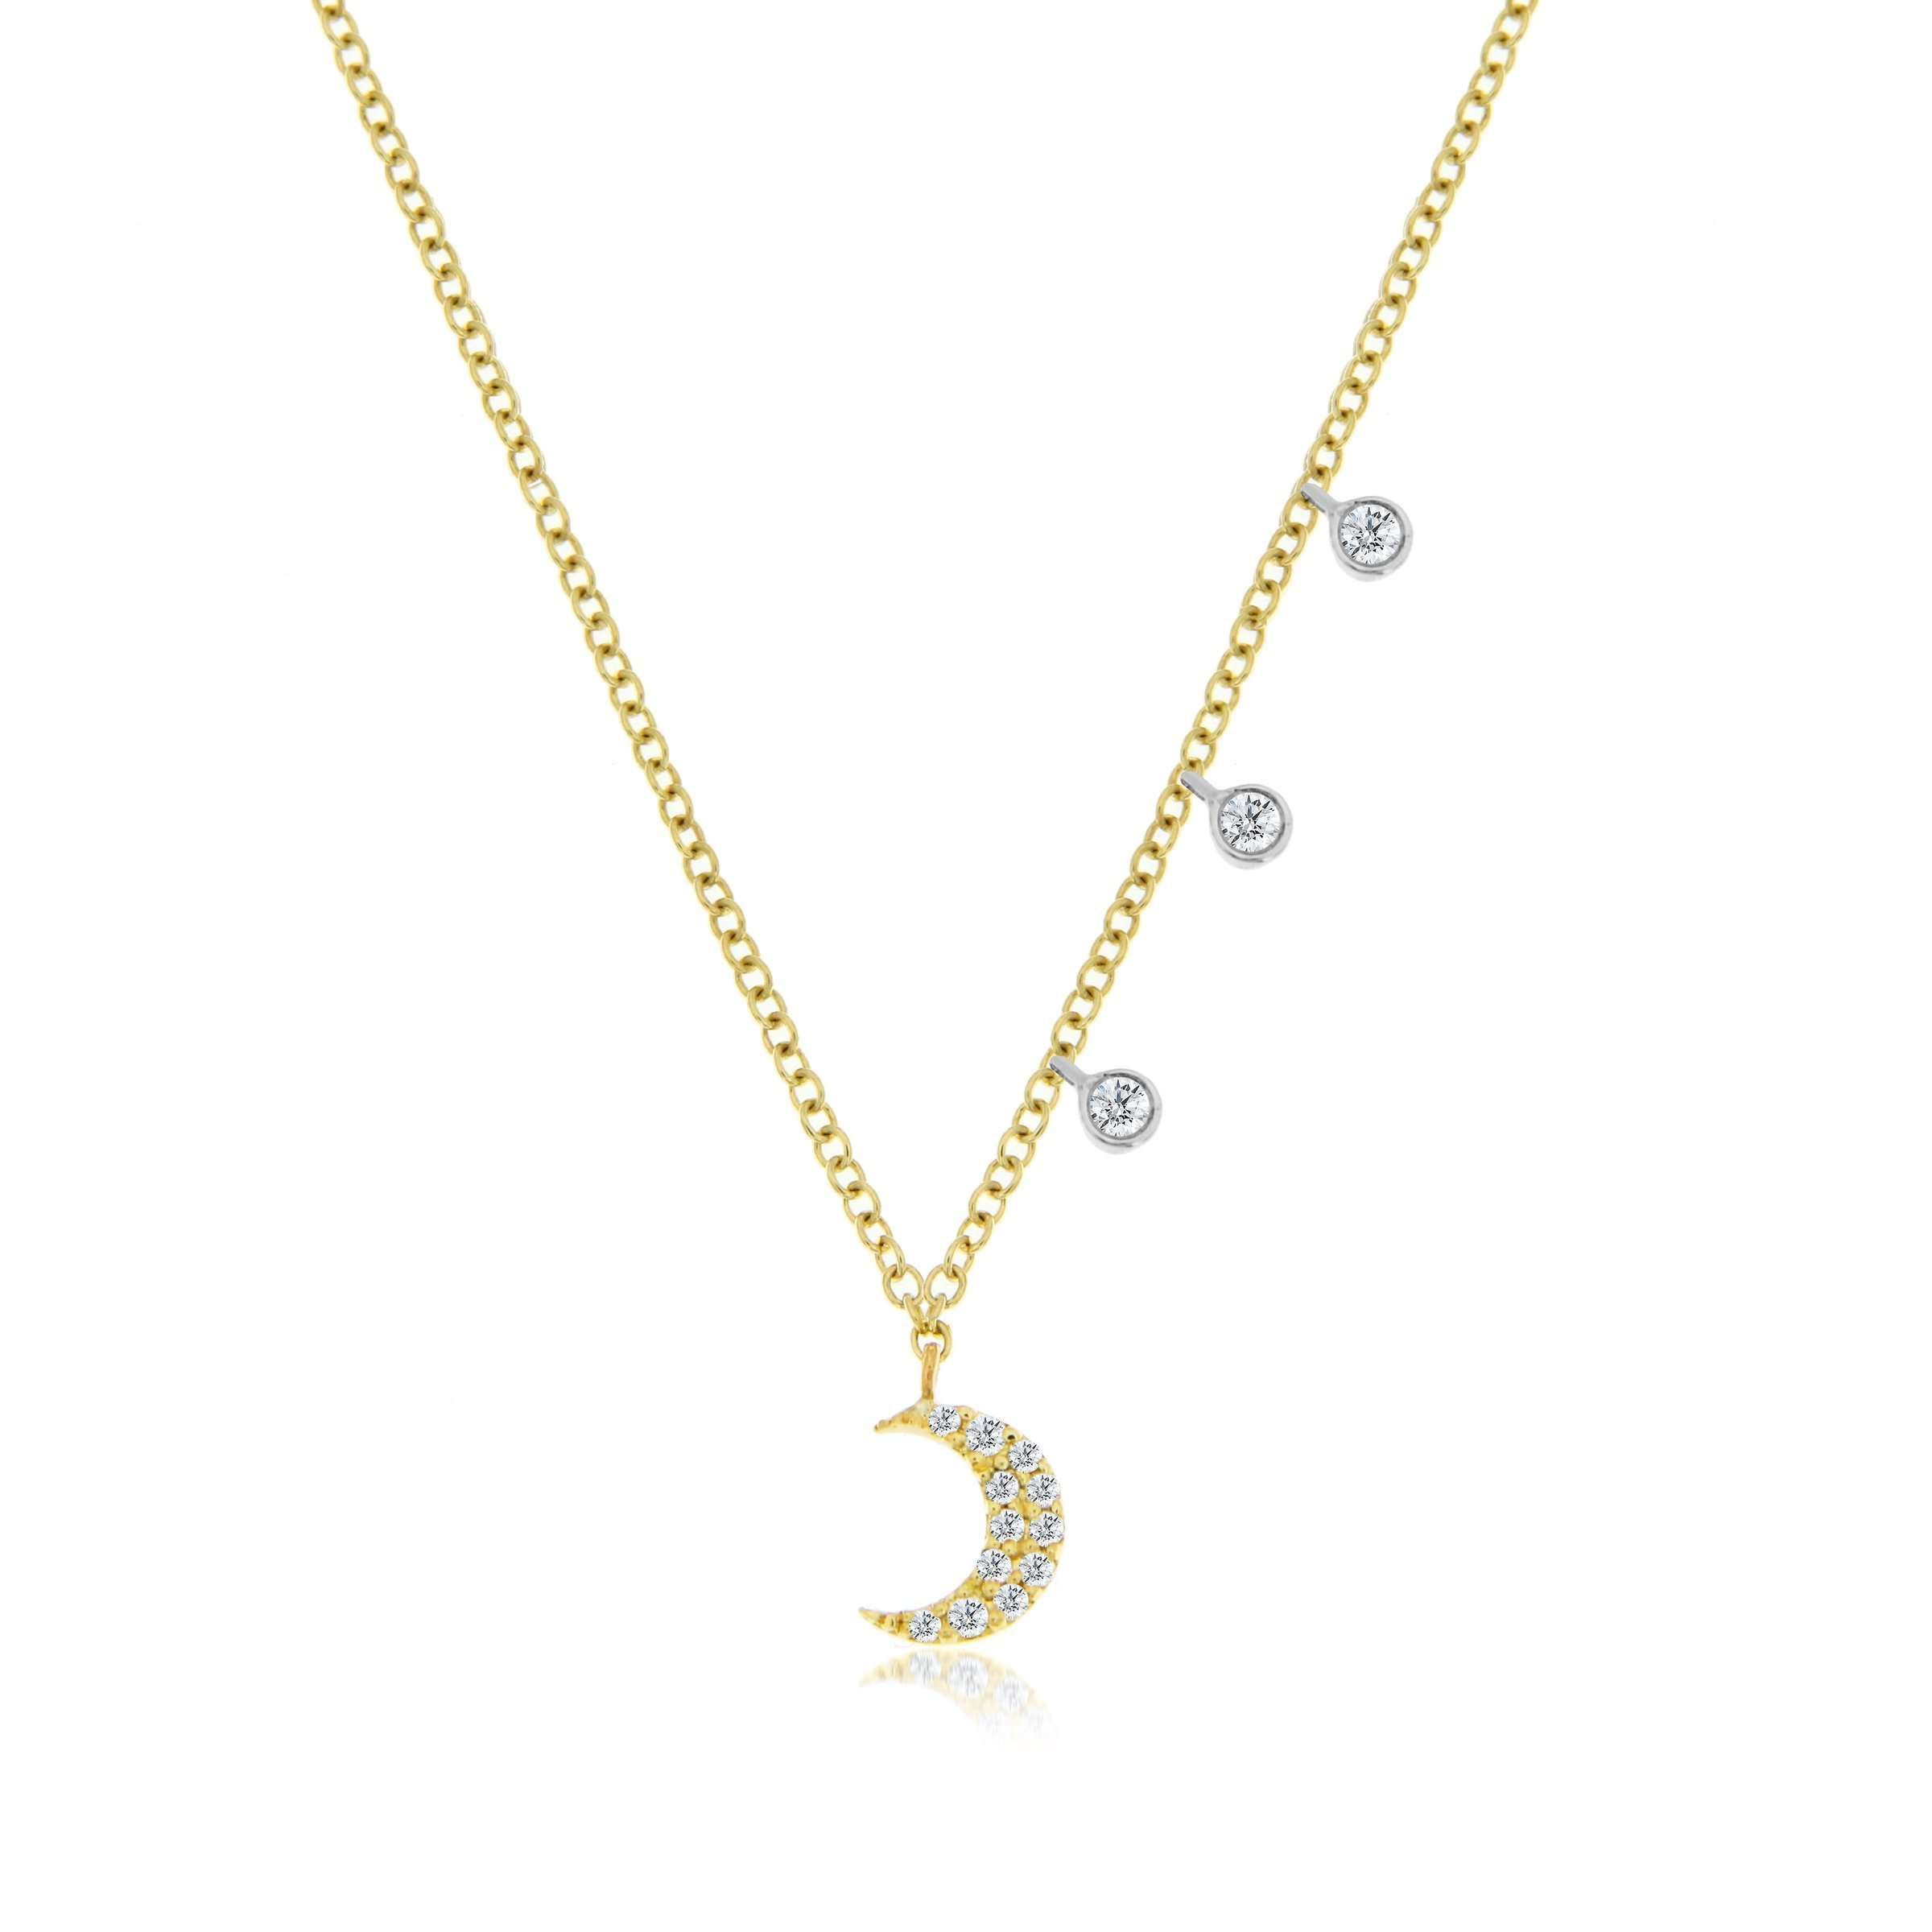 Meira T Essential Moon Necklace